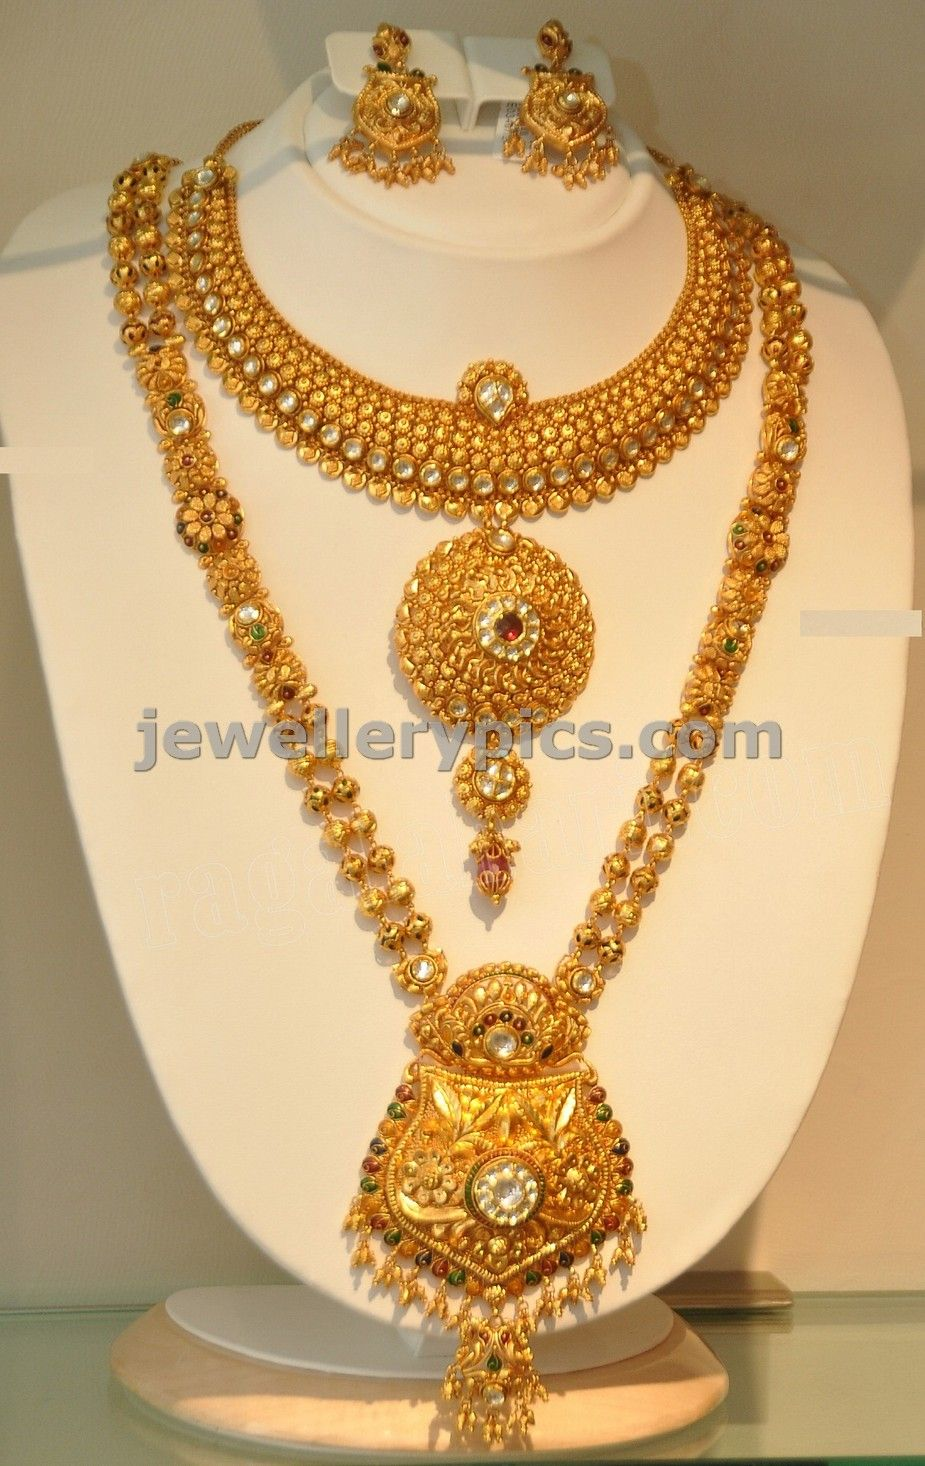 Find This Pin And More On Gold Jewellery Latest Indian Jewellery Designs